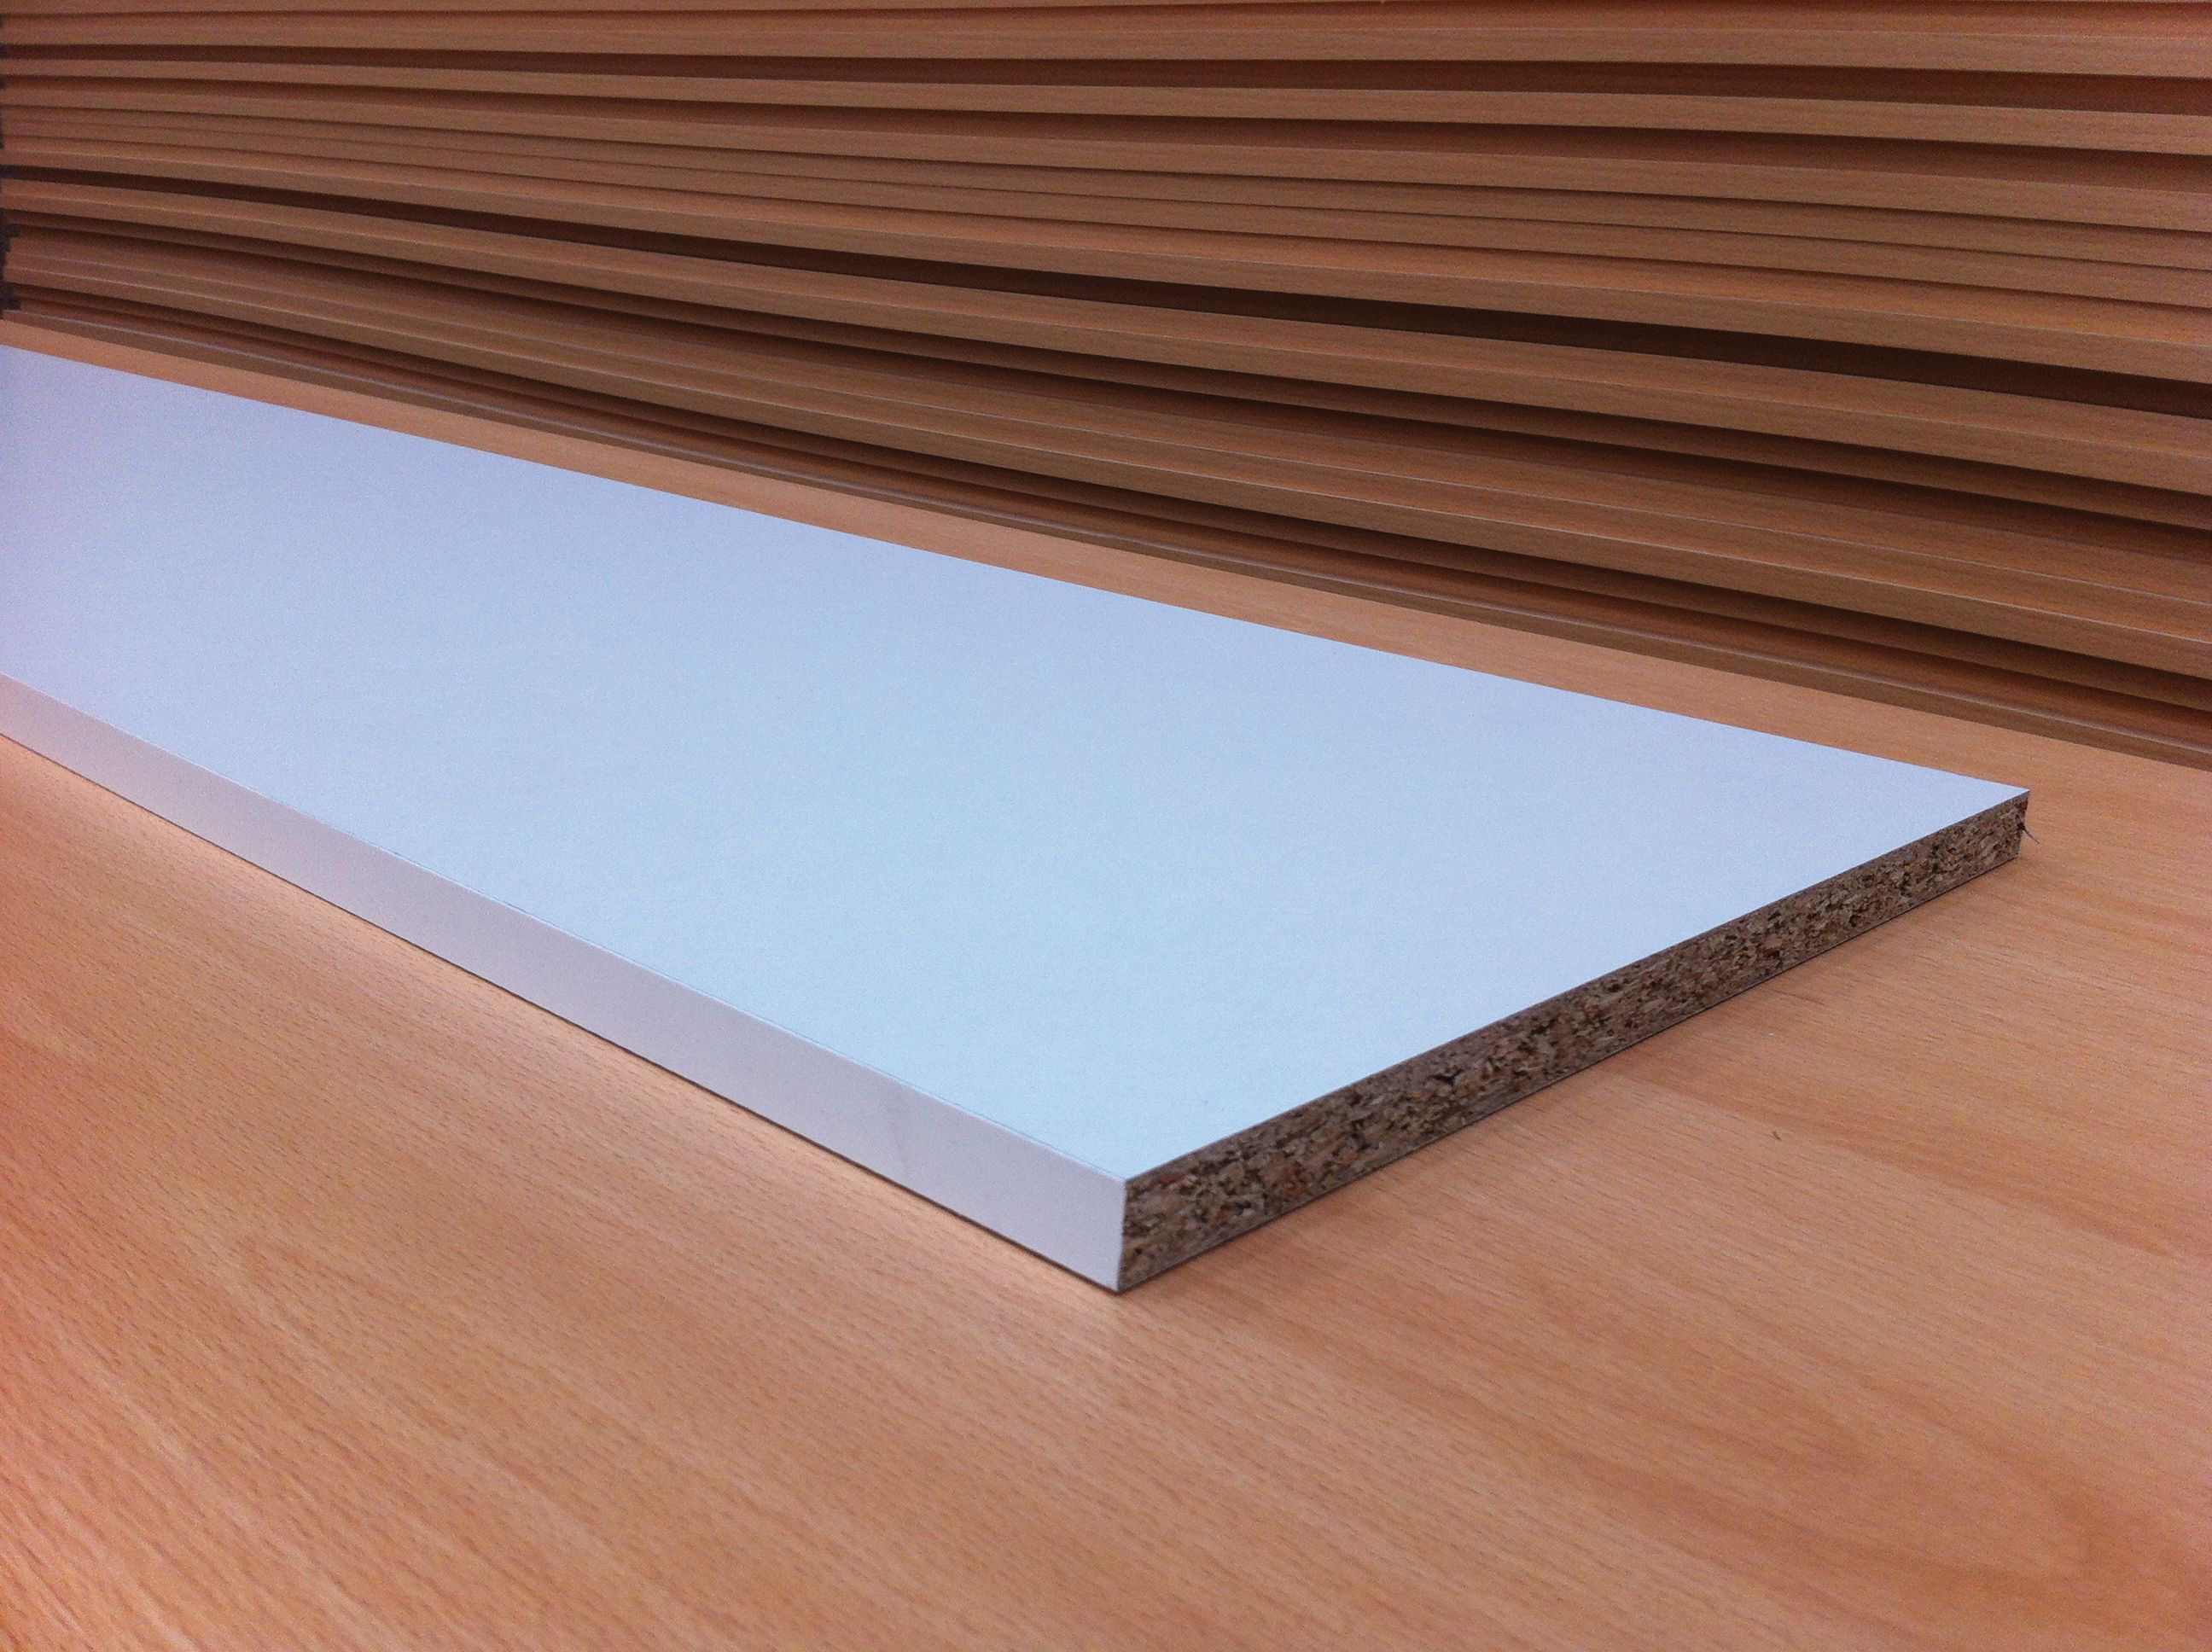 Mdf Board For Floor ~ Sheet material plywood sheets wooden chipboard mdf